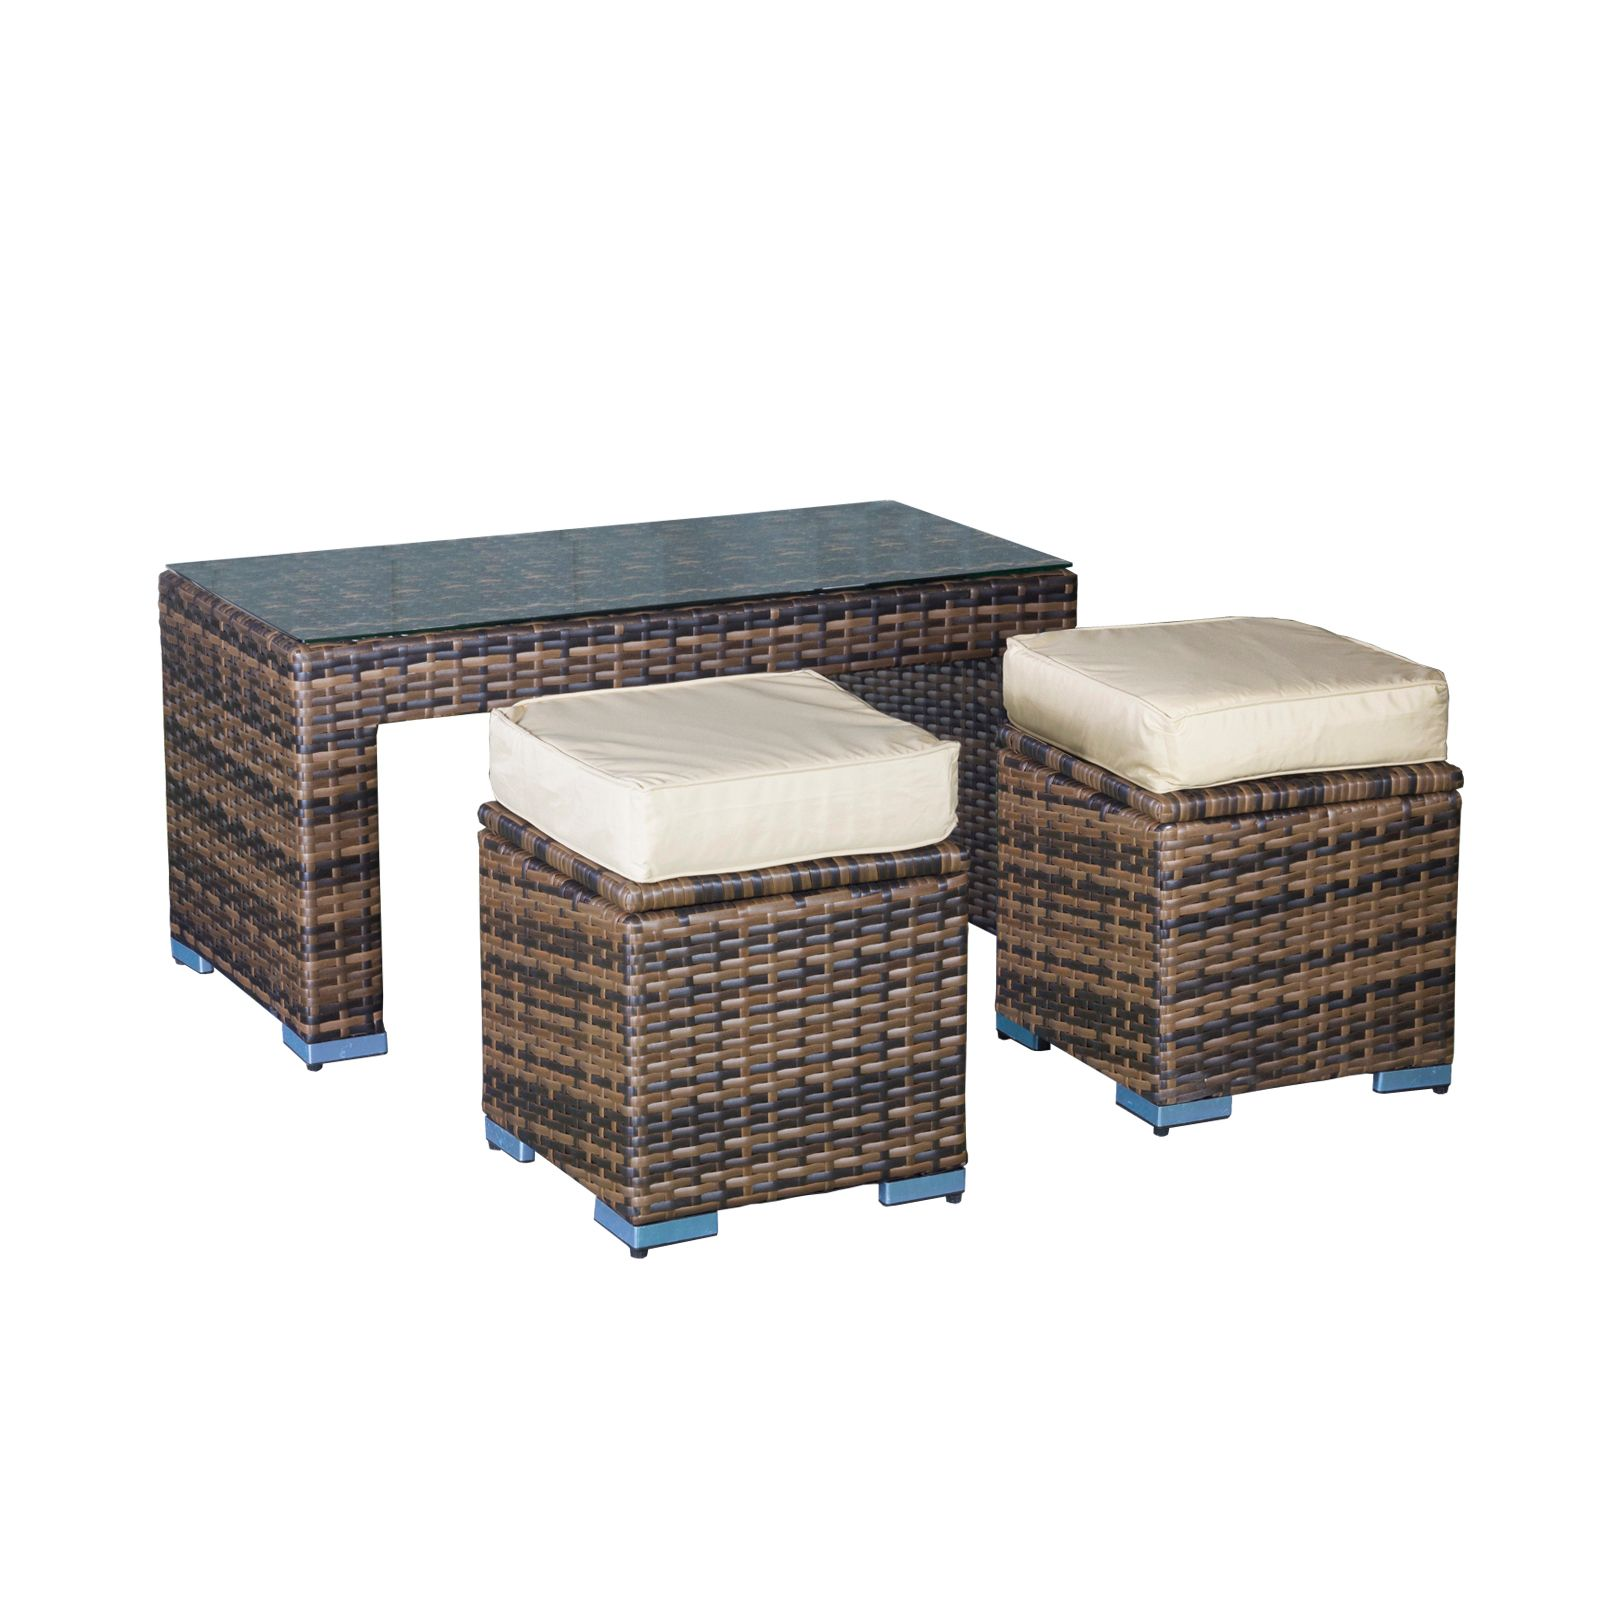 Oseasons Oxford Rattan Modular Coffee Table & 2 Stool Set House